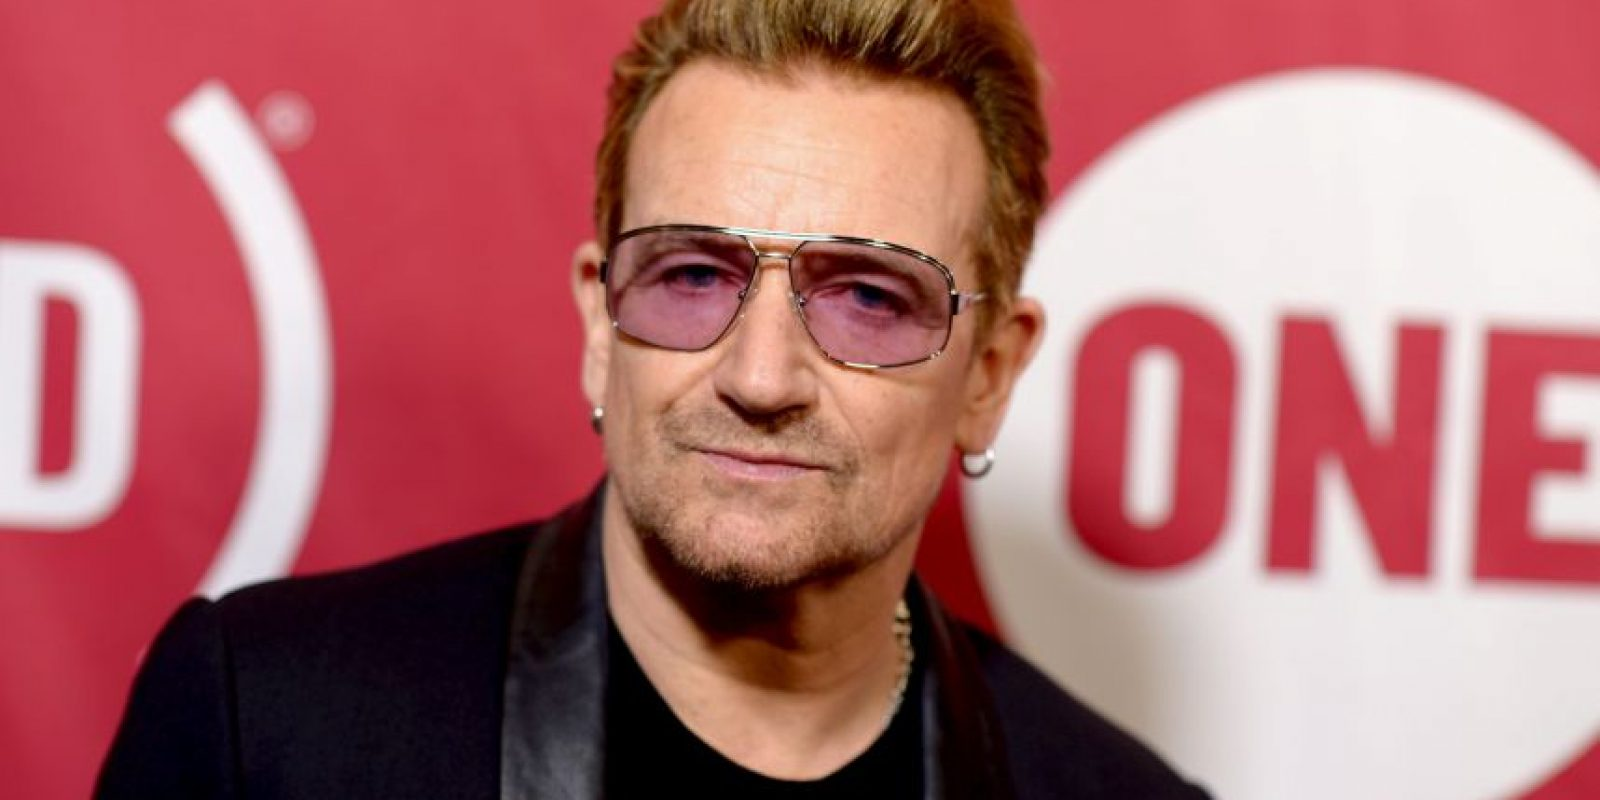 Bono Foto: Getty Images